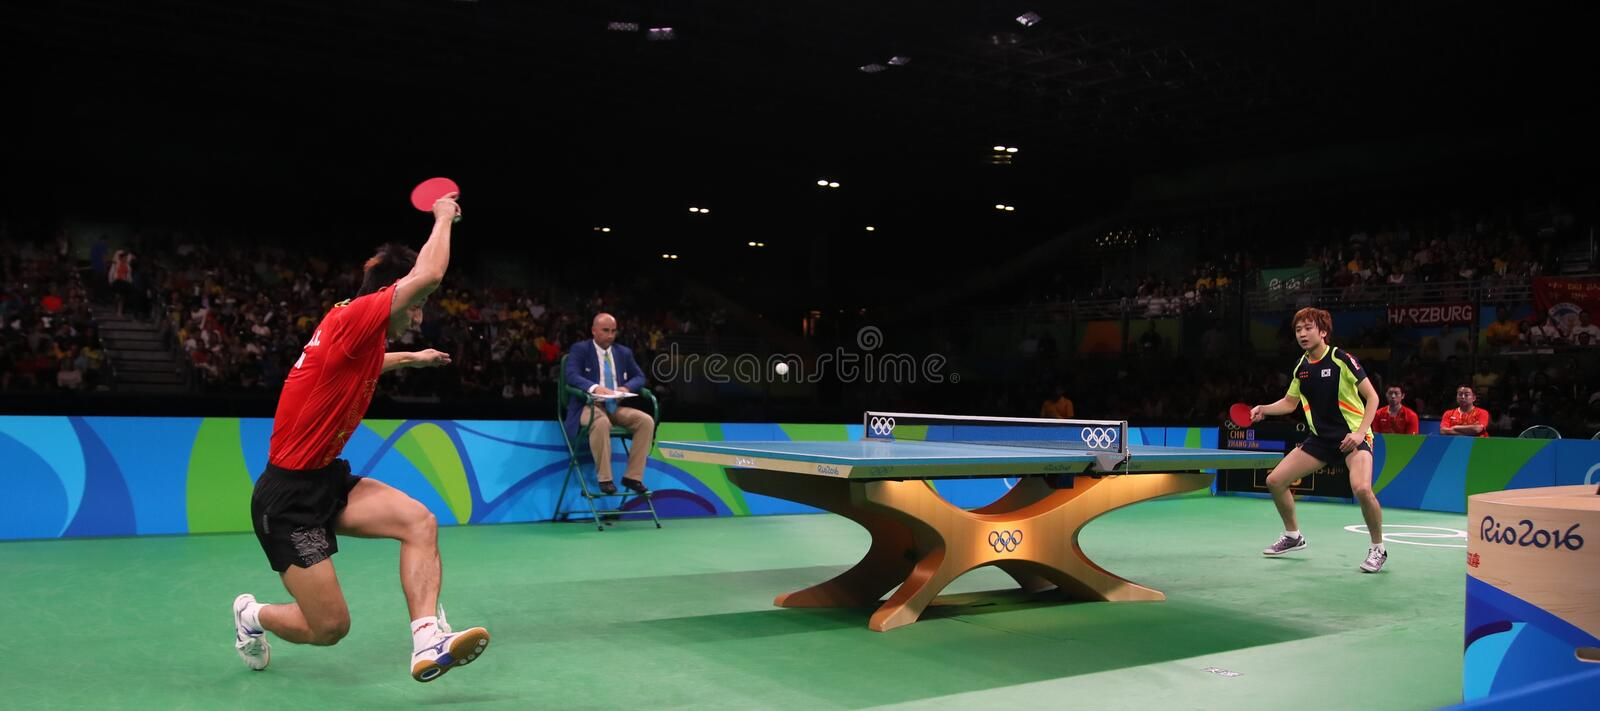 Zhang Jike playing table tennis at the Olympic Games in Rio 2016. Zhang Jike from China silver medal in table tennis at the Olympic Games in Rio 2016 stock photos